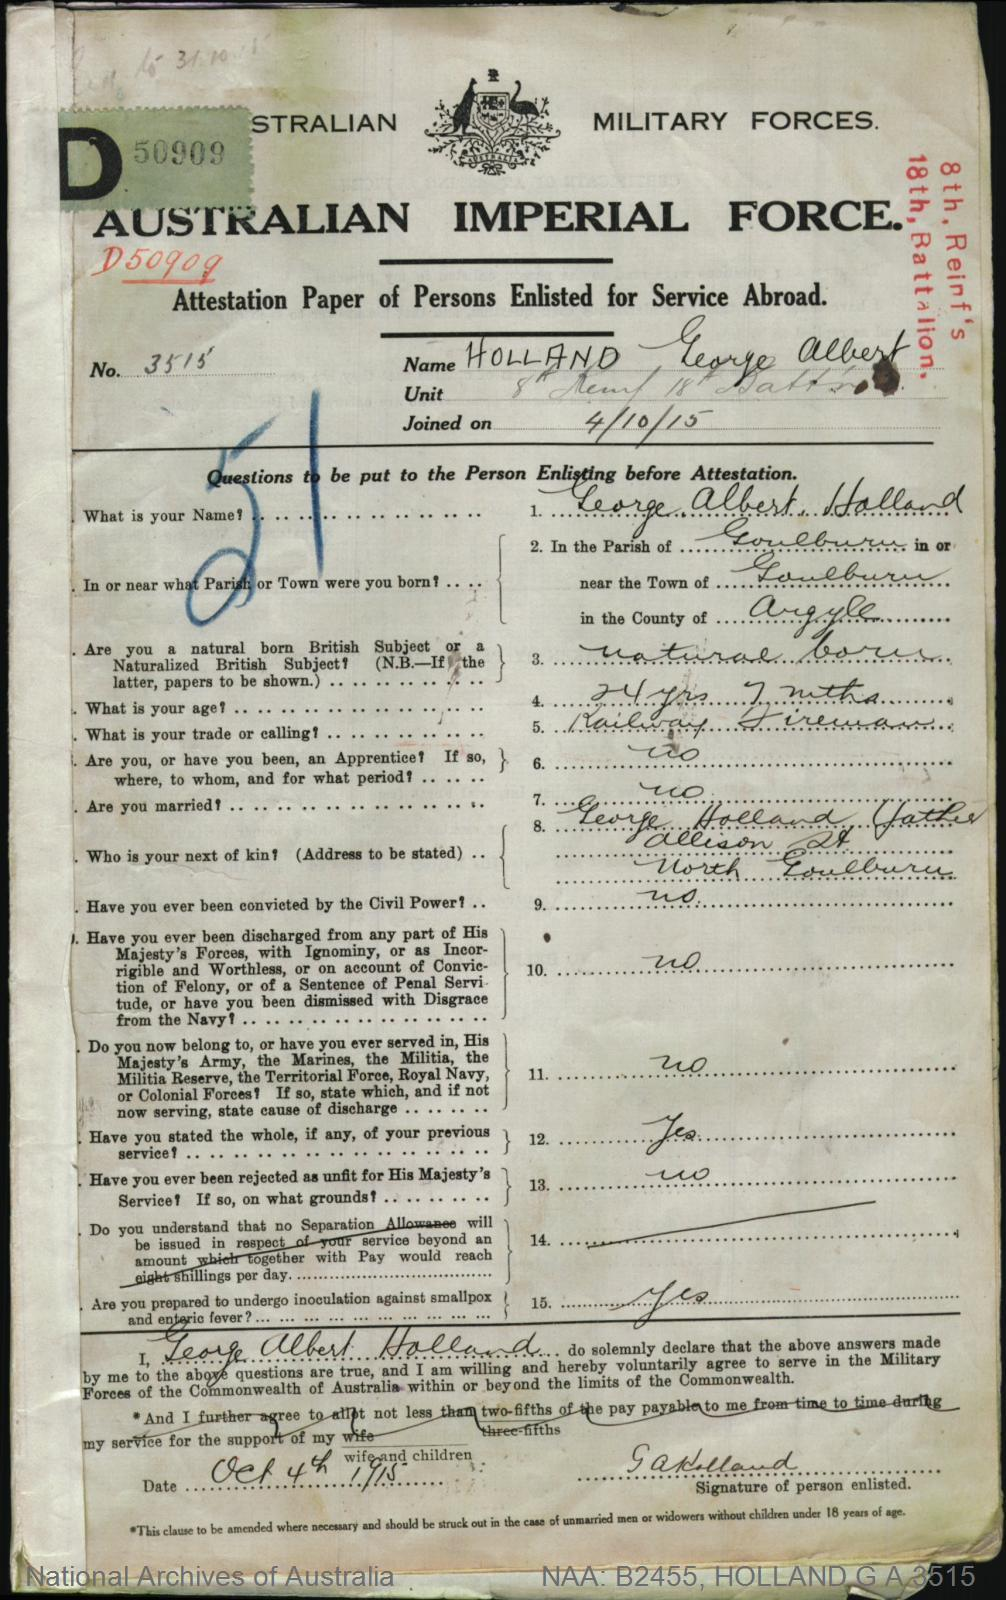 HOLLAND George Albert : Service Number - 3515 : Place of Birth - Goulburn NSW : Place of Enlistment - Goulburn NSW : Next of Kin - (Father) HOLLAND George